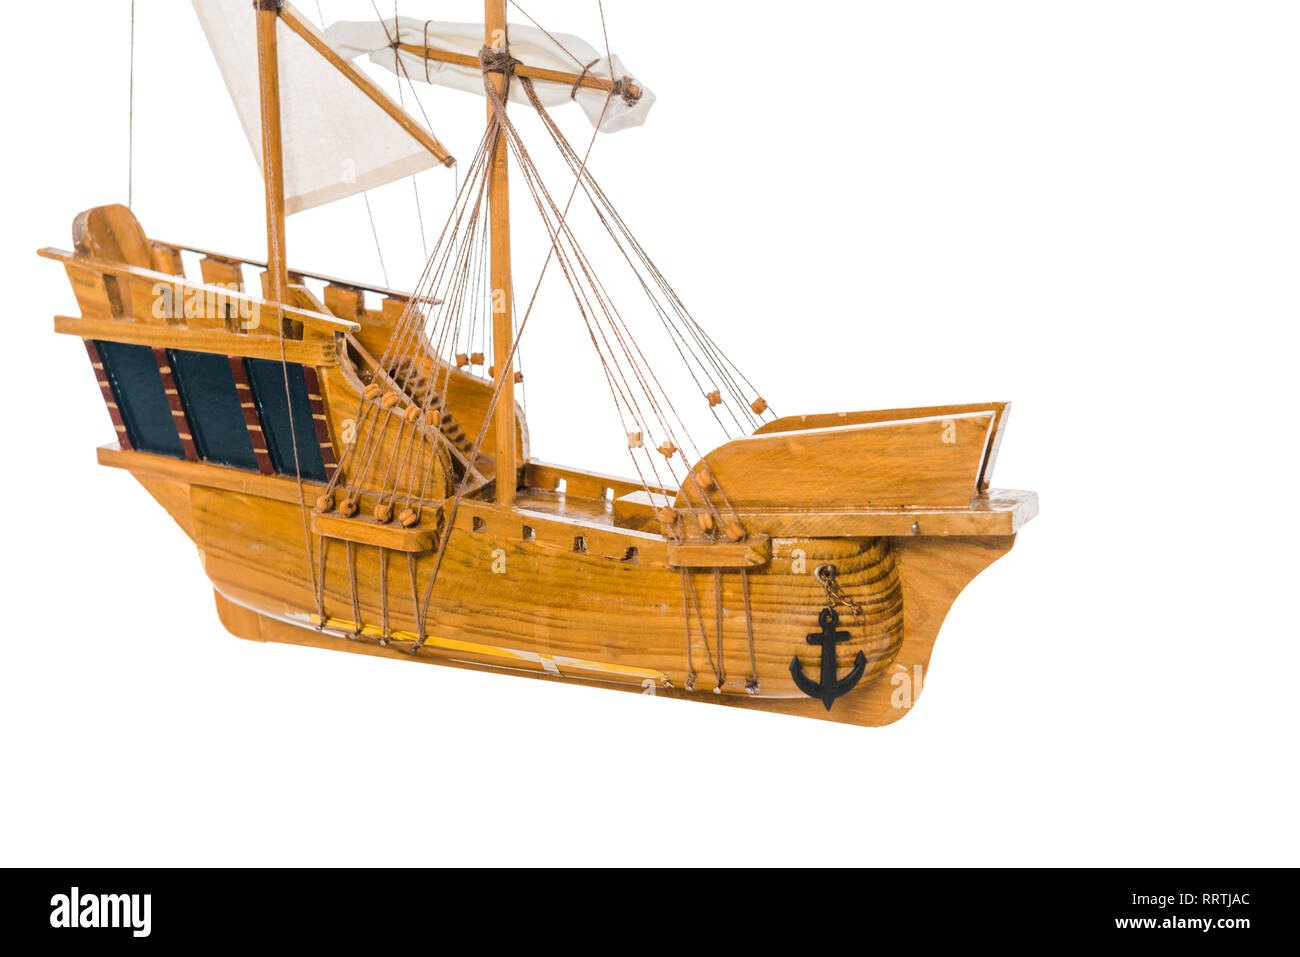 vintage wooden ship model floating in air isolated on white with copy space - Stock Image